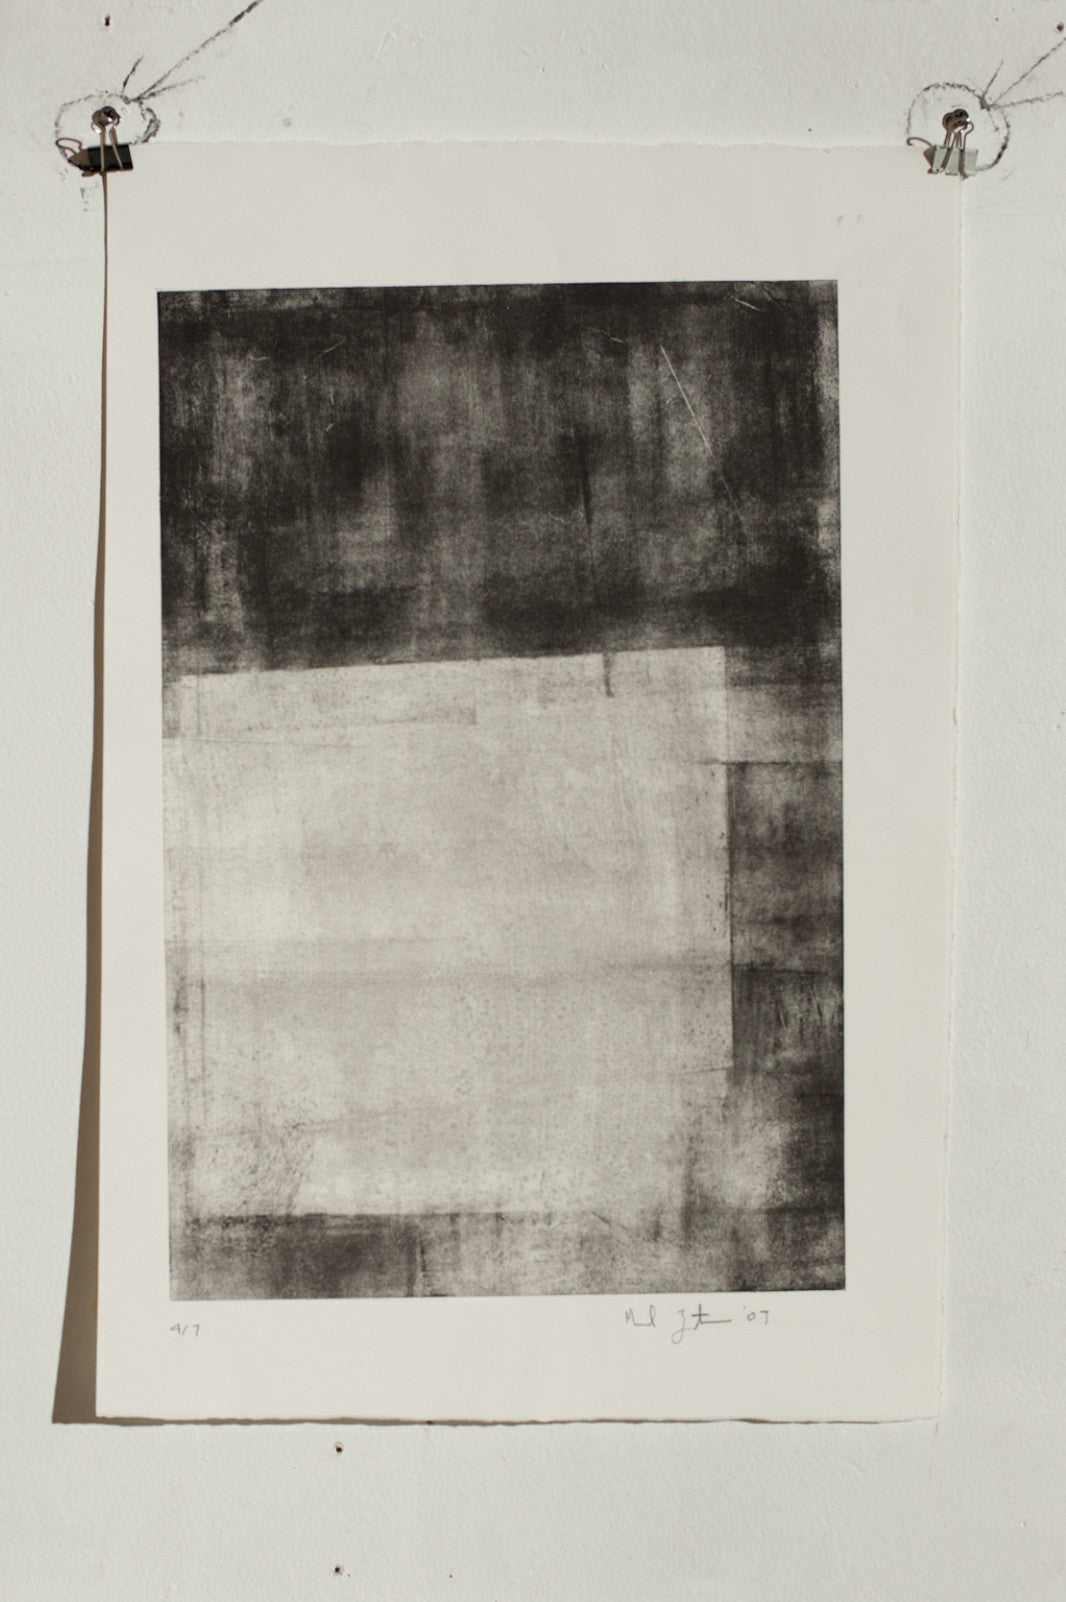 Manuel Zeitlen - Untitled (9) - Lithograph Print on Archival Paper